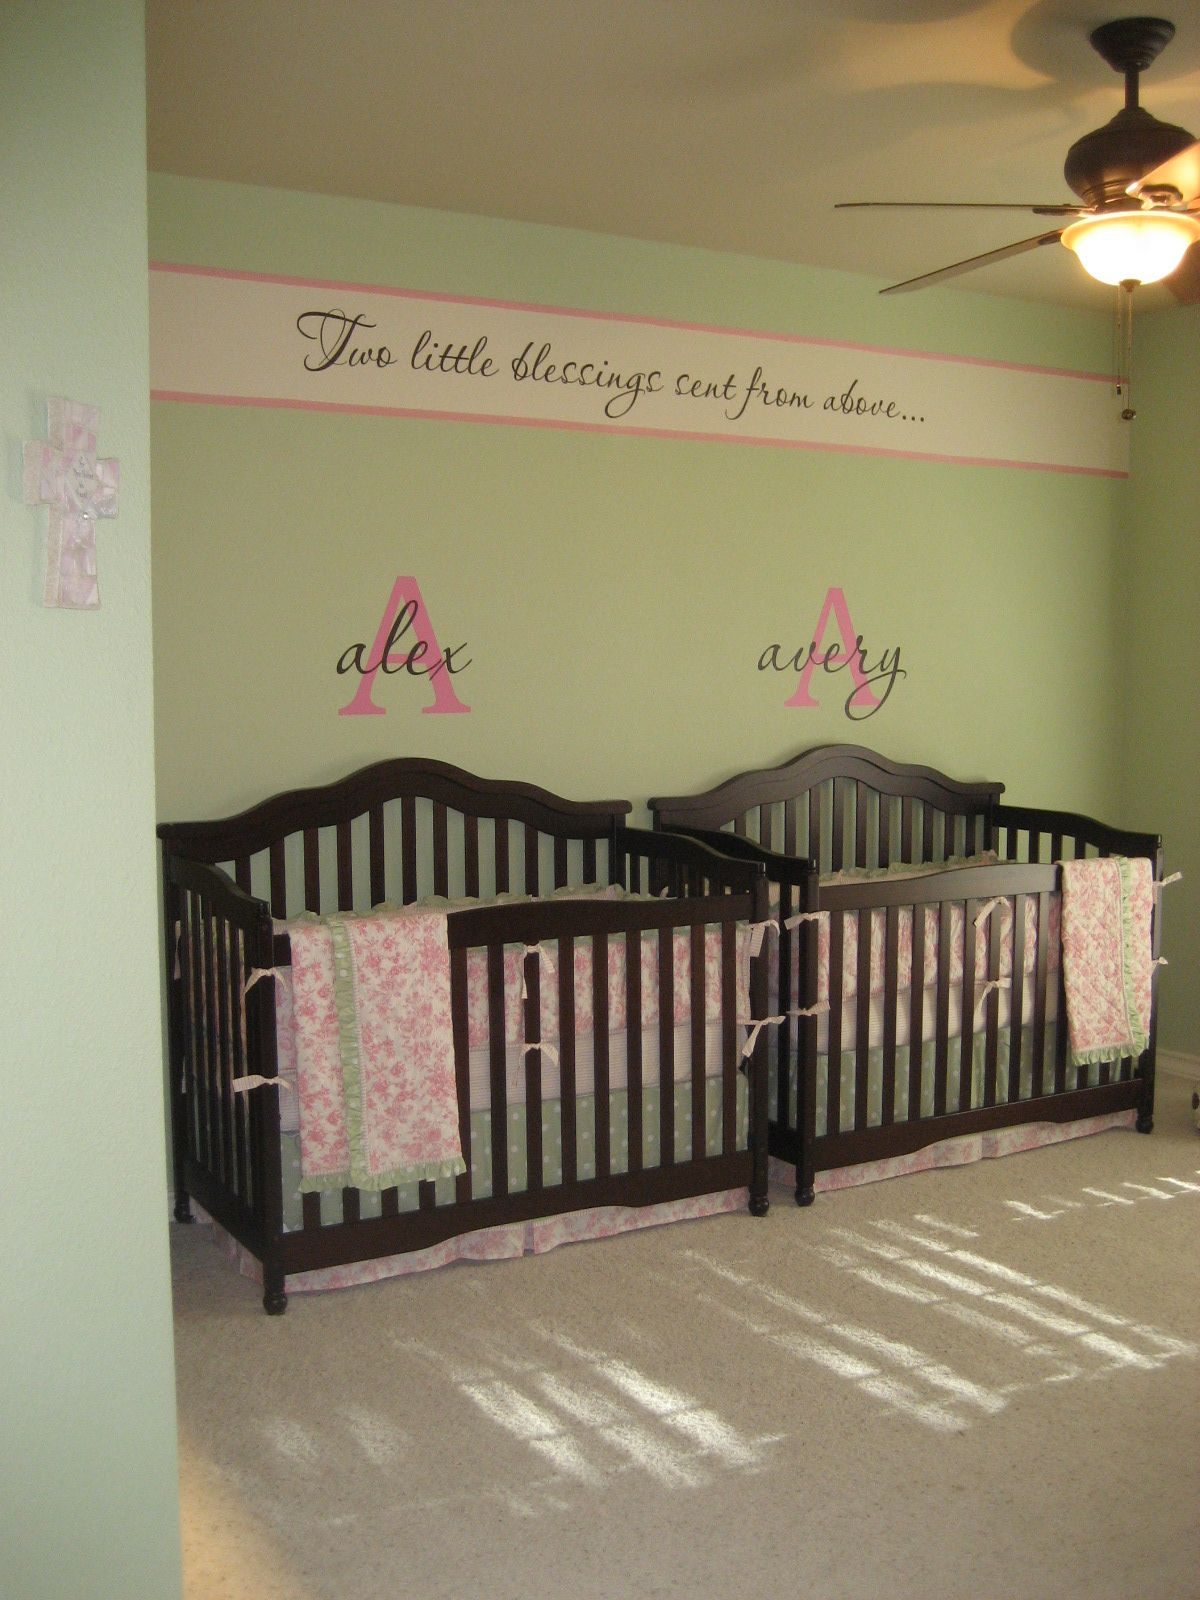 Twin Baby Room Ideas - The Decorations She Gathered At